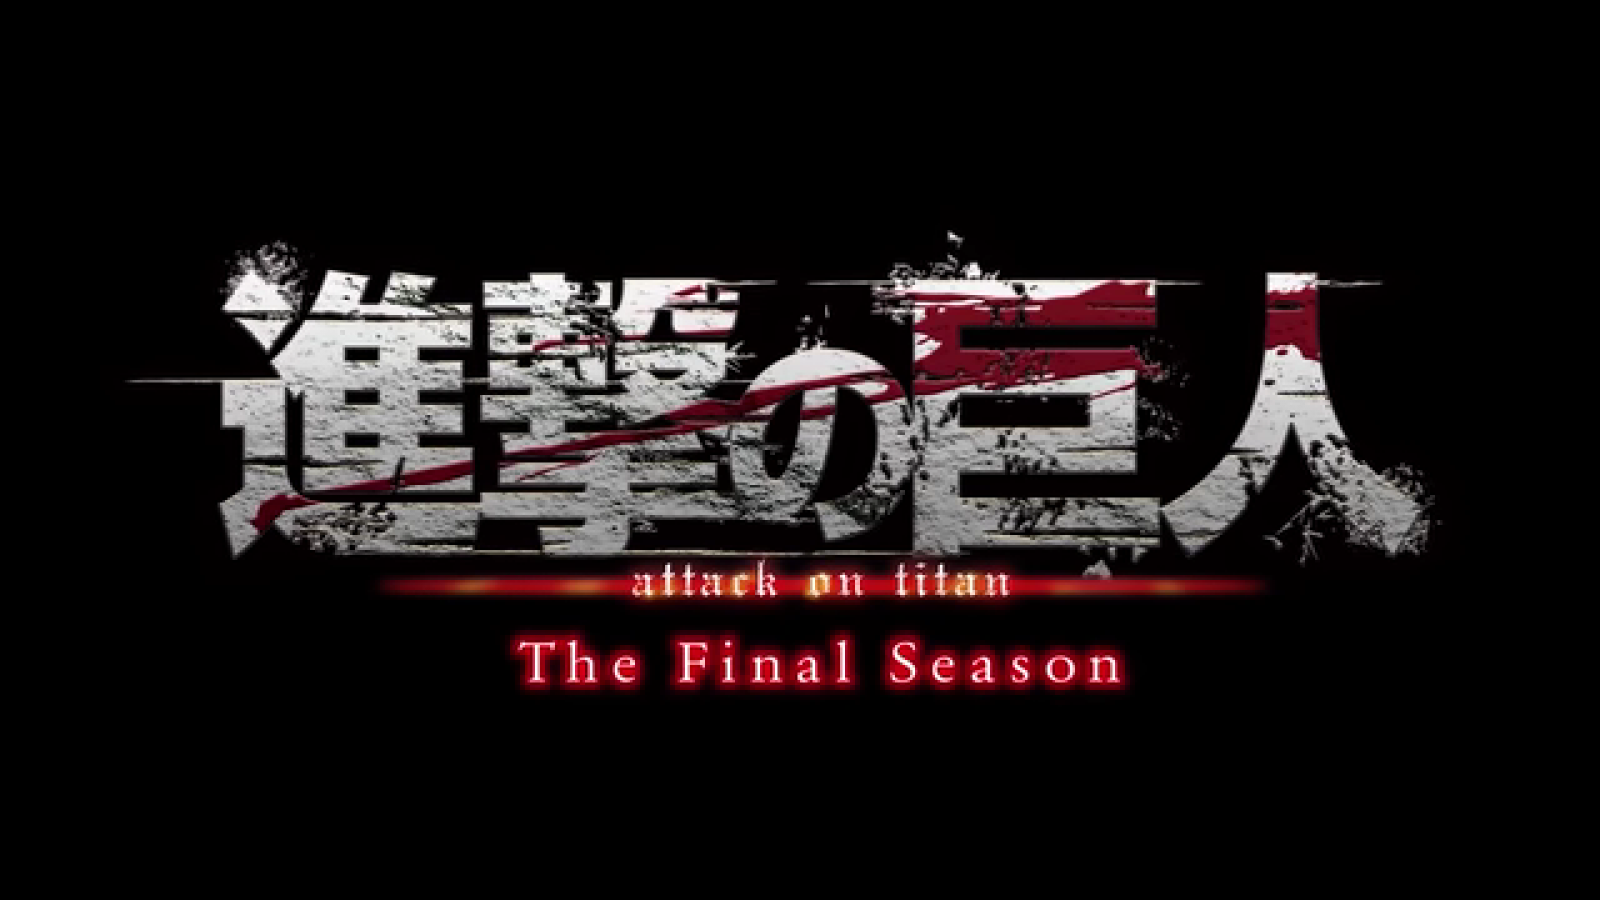 Attack On Titan Season 4 Episode 3 Release Date And Where To Watch Online